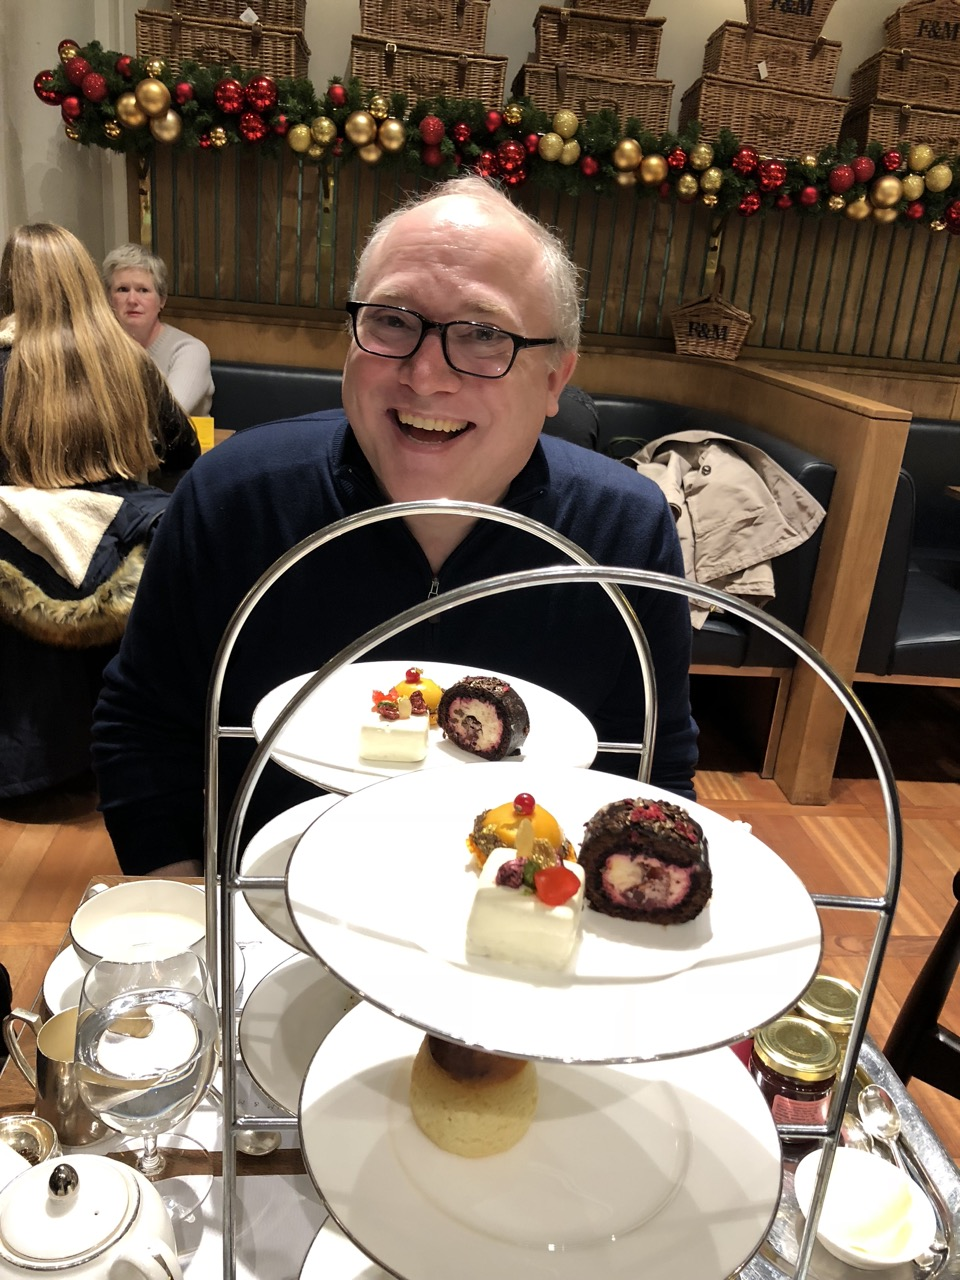 A spot of afternoon tea at Fortnum & Mason